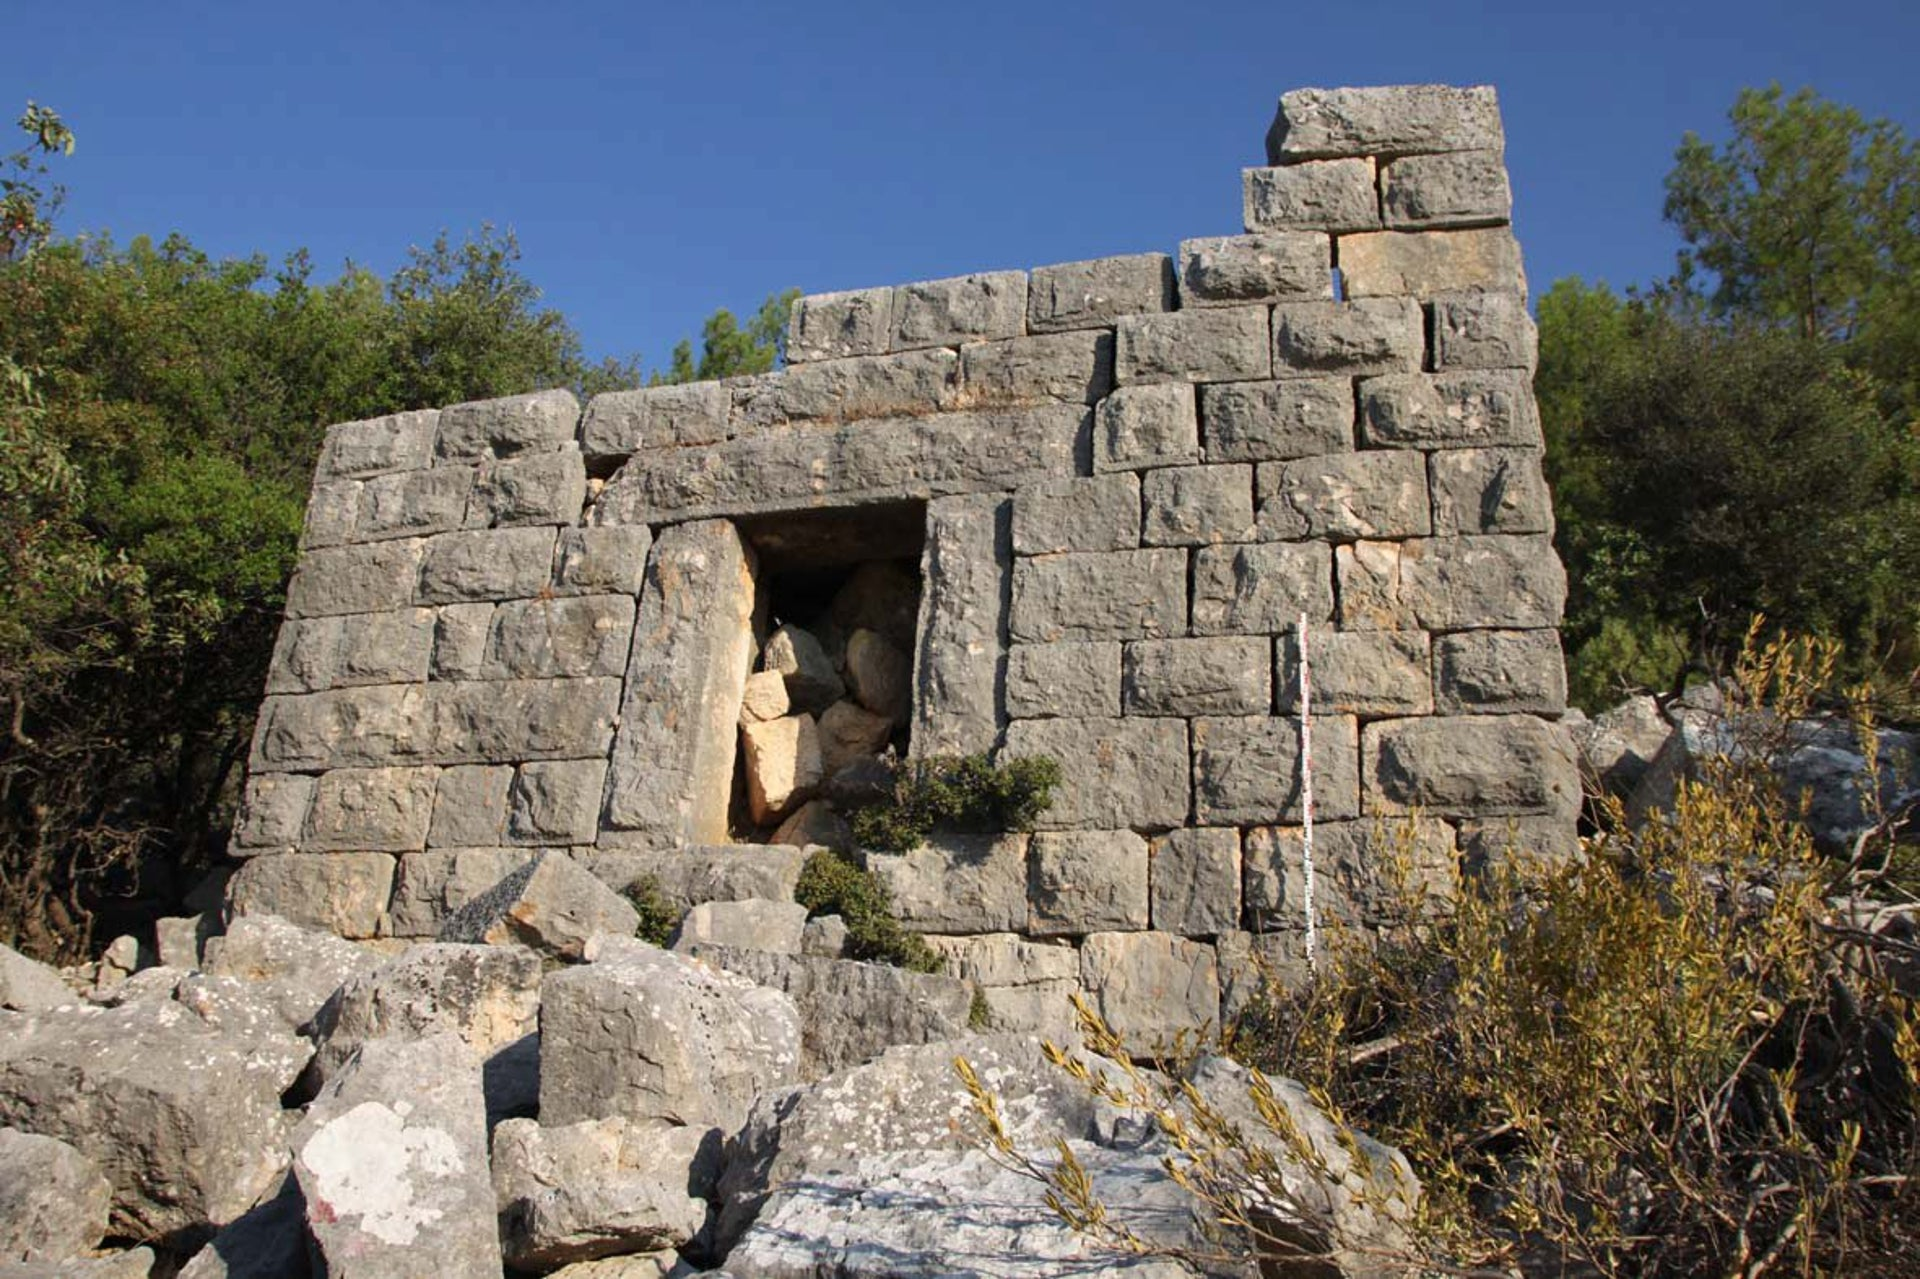 Tower in Roman farmstead, Kibyratis, Turkey: Picture shows closely-fitting stone bricks and  a doorway of what had been a tower in a Roman farm owned by the elite in southwest Turkey some 1900 years ago.